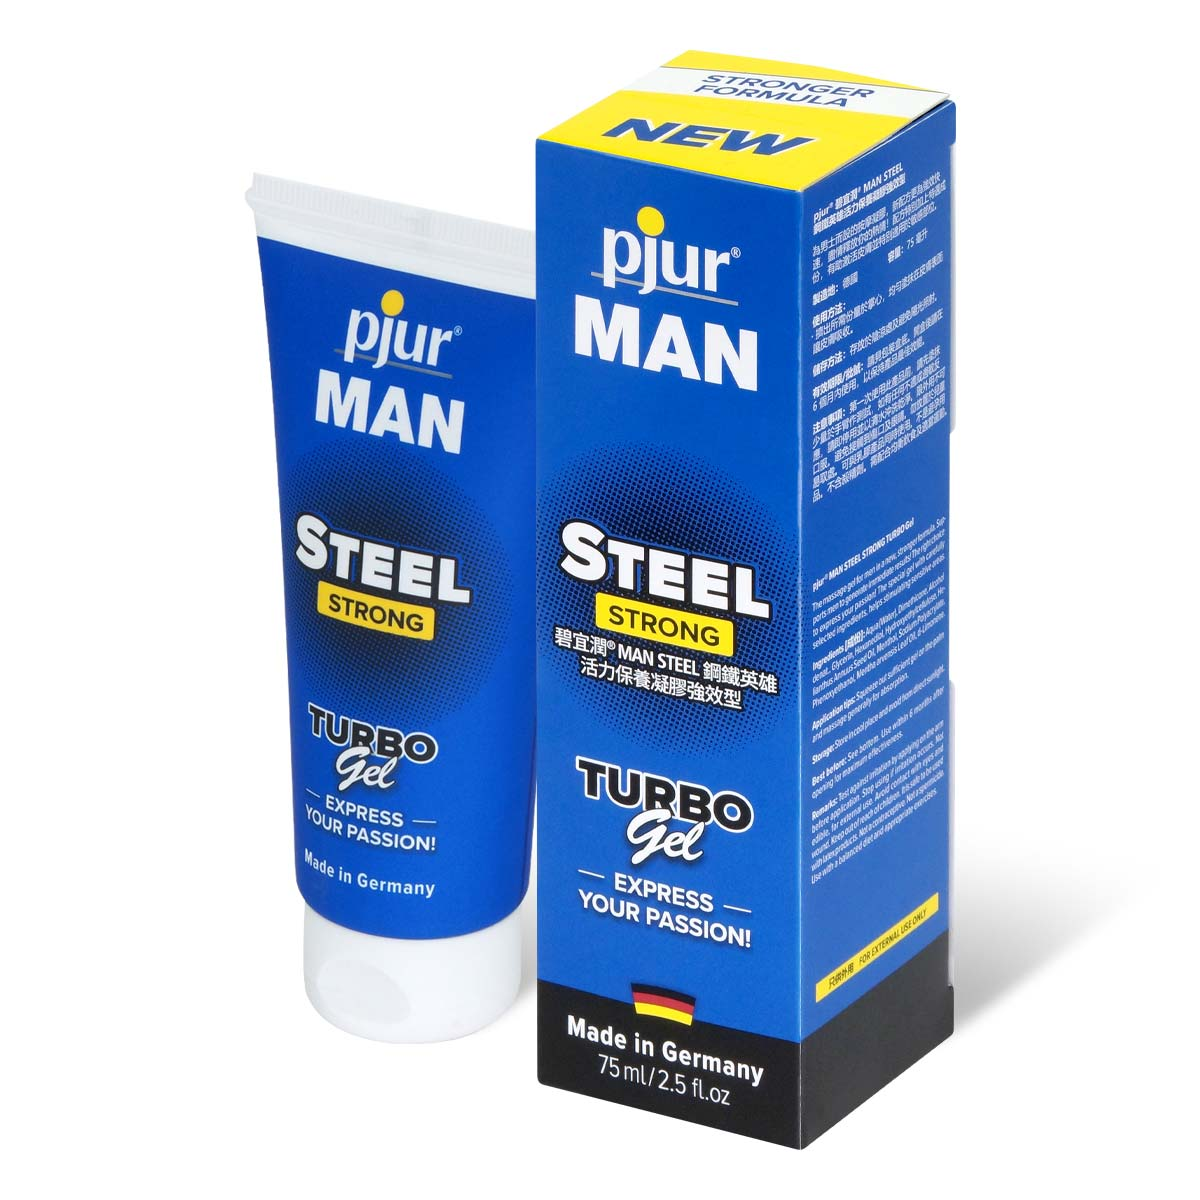 pjur MAN STEEL STRONG Turbo Gel 75ml